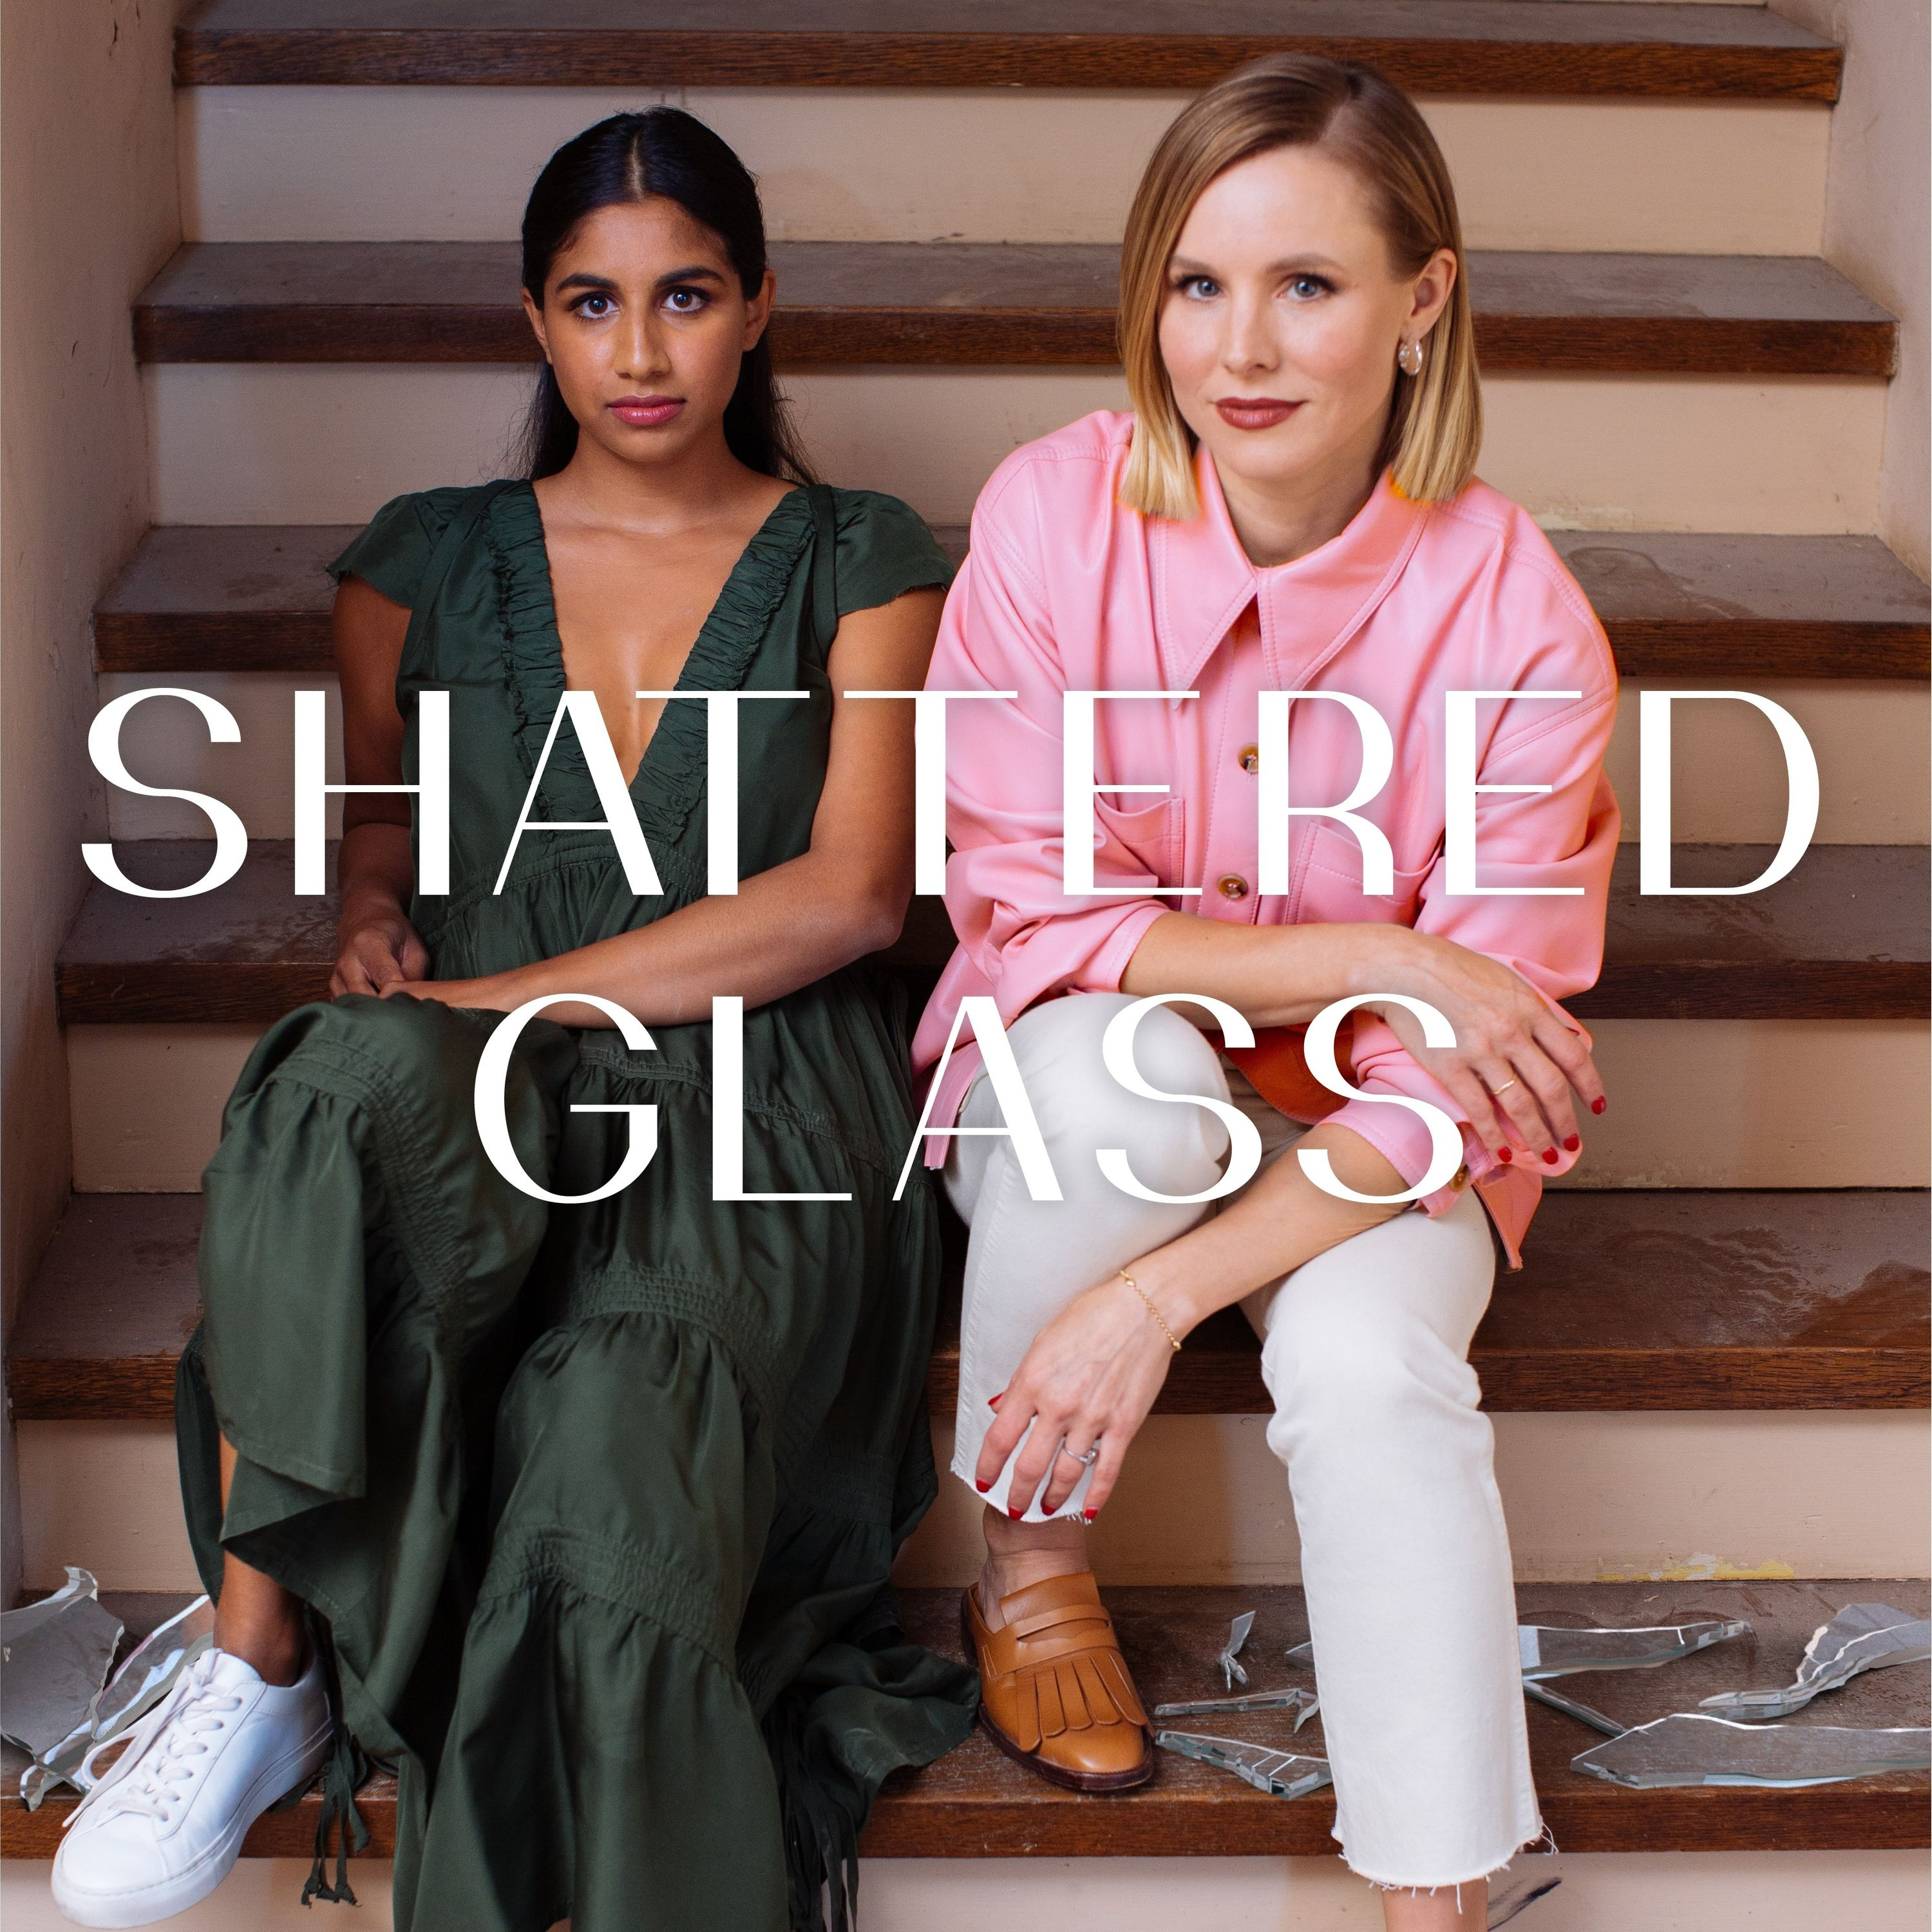 Introducing... Shattered Glass